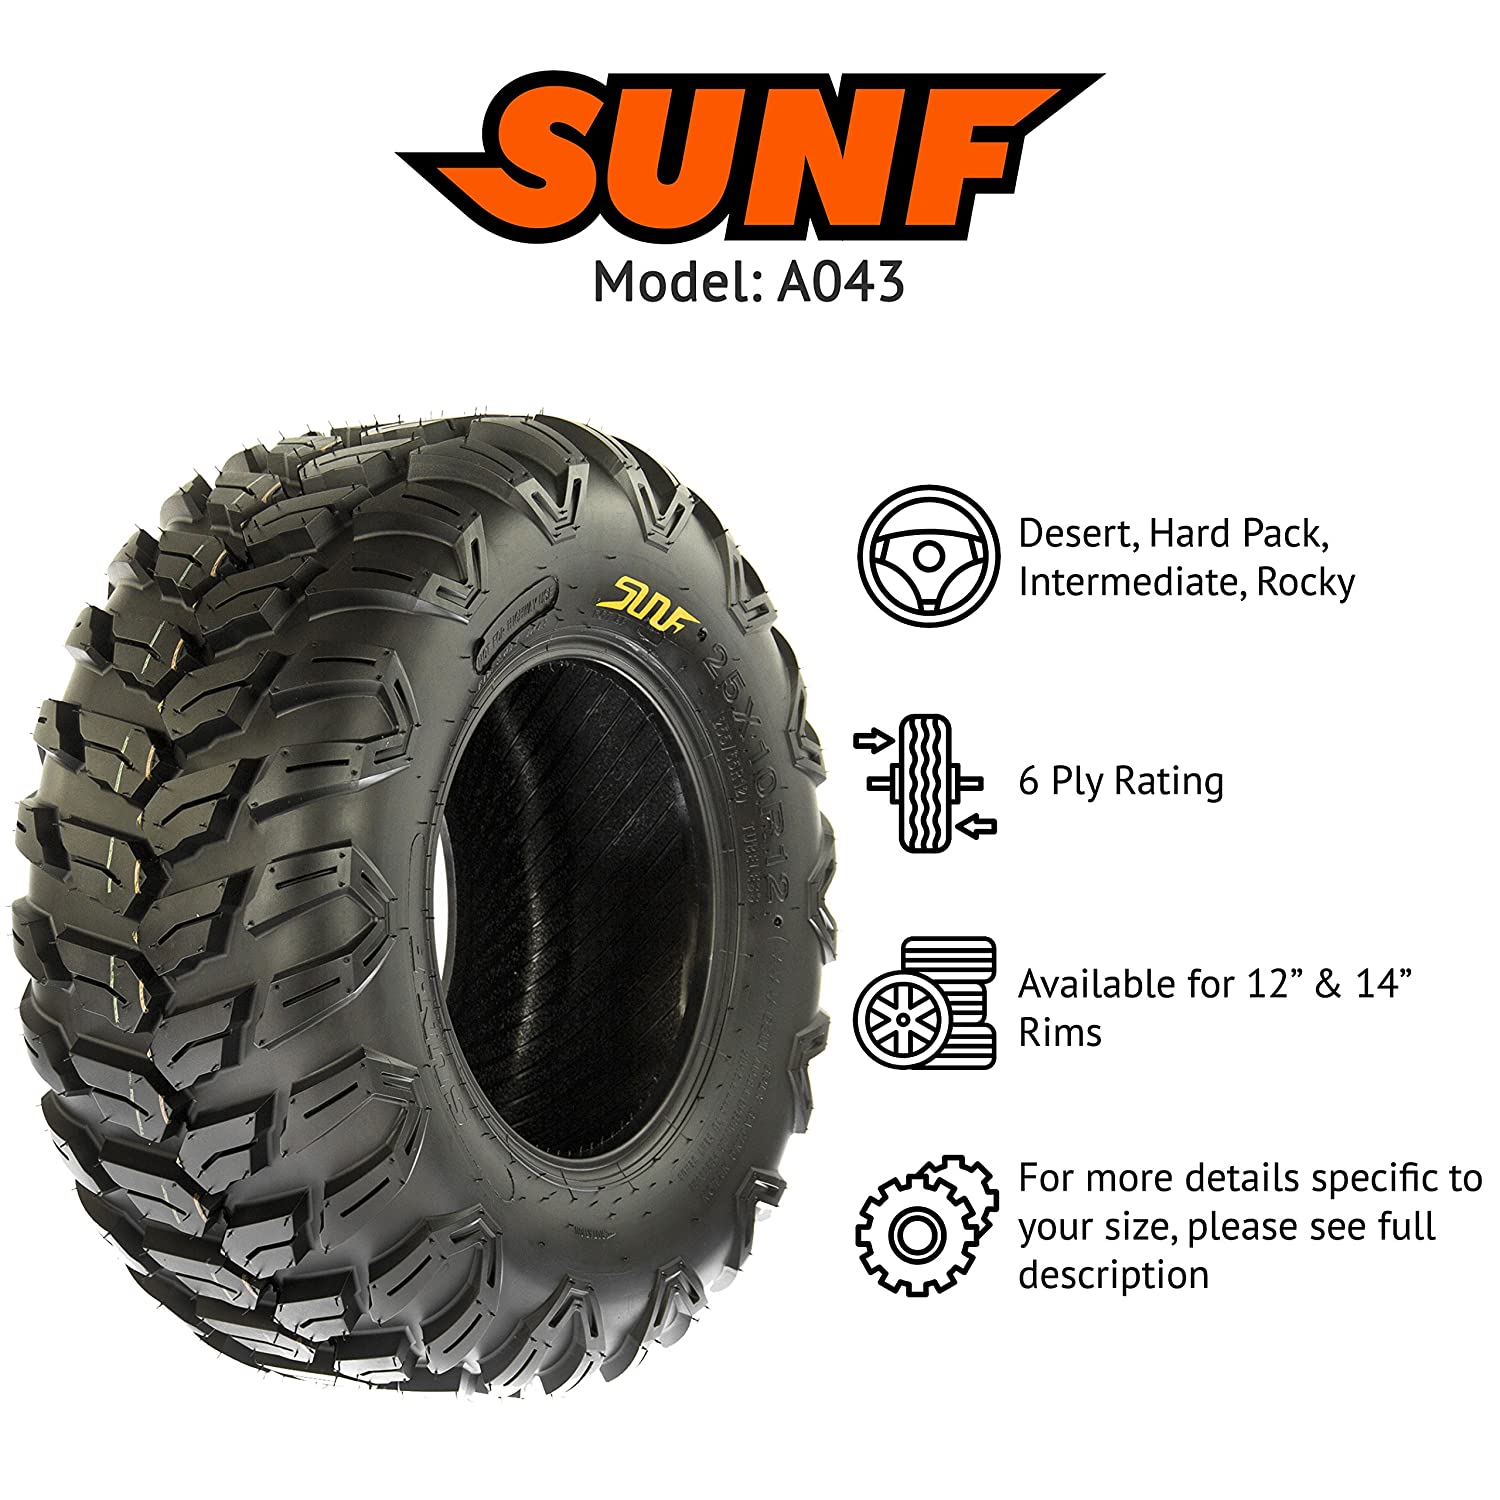 Set of 4 SunF Radial Race Replacement ALL TERRAIN ATV UTV 6 Ply Tires 26x9R12 26x9x12 Tubeless A043,